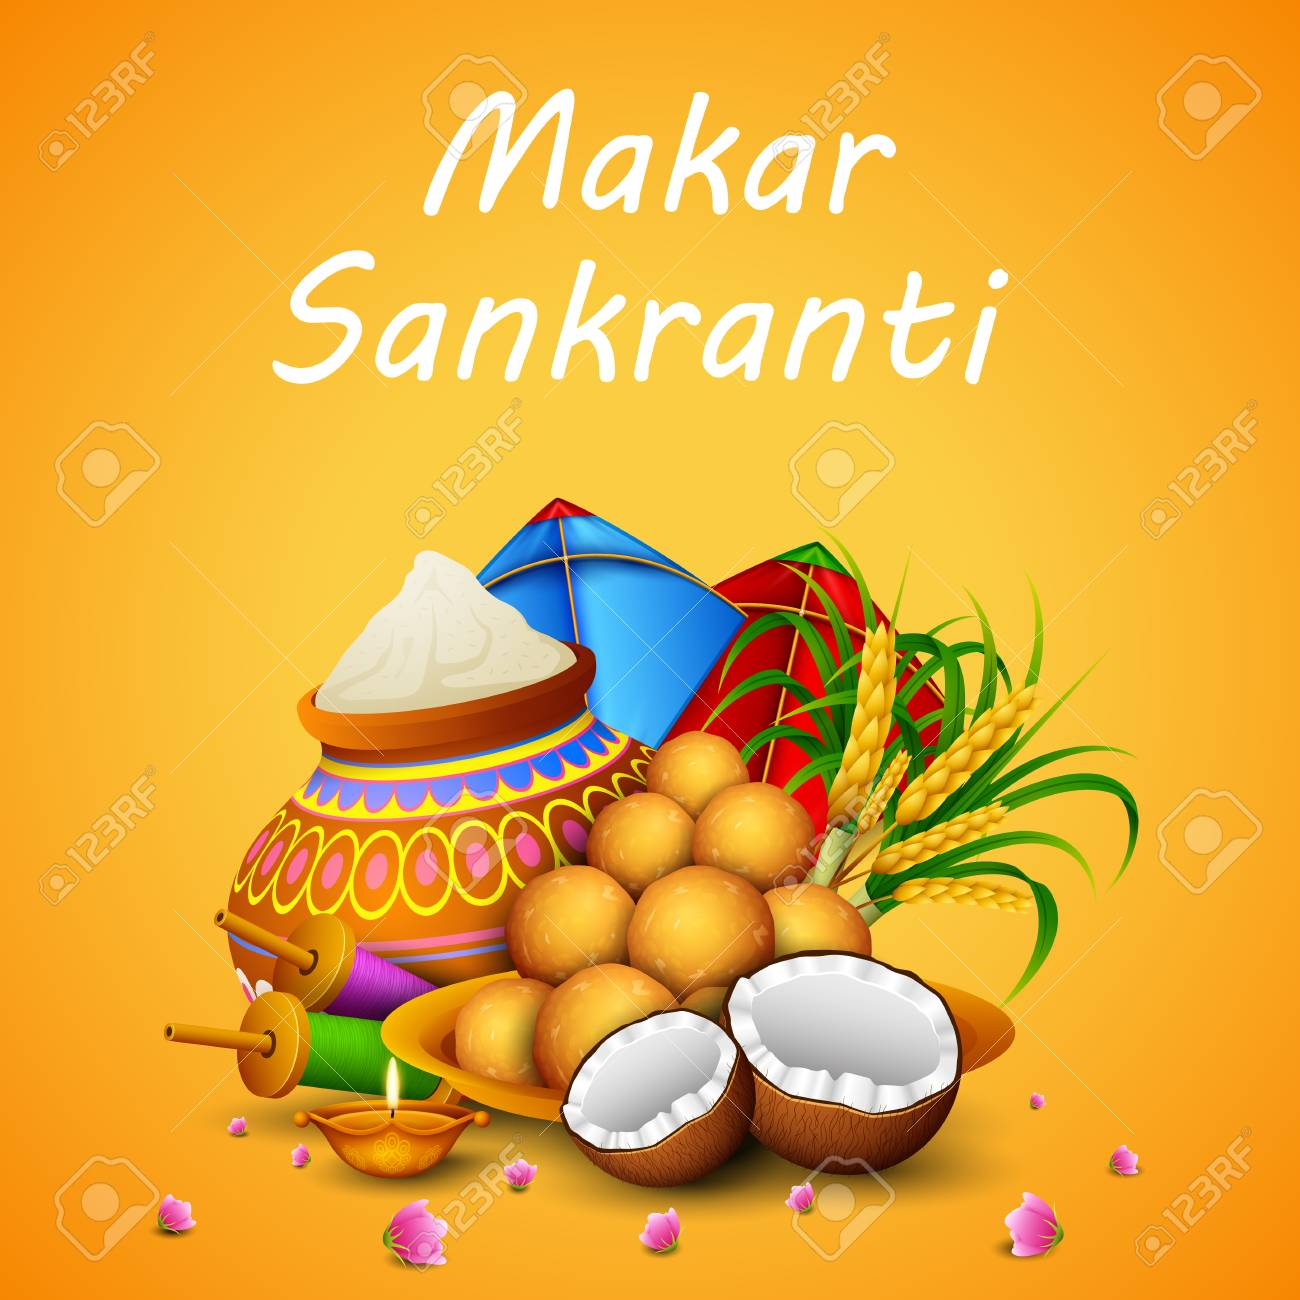 Happy Makar Sankranti Greeting Card Stock Photo, Picture And Royalty Free  Image. Image 112628233.